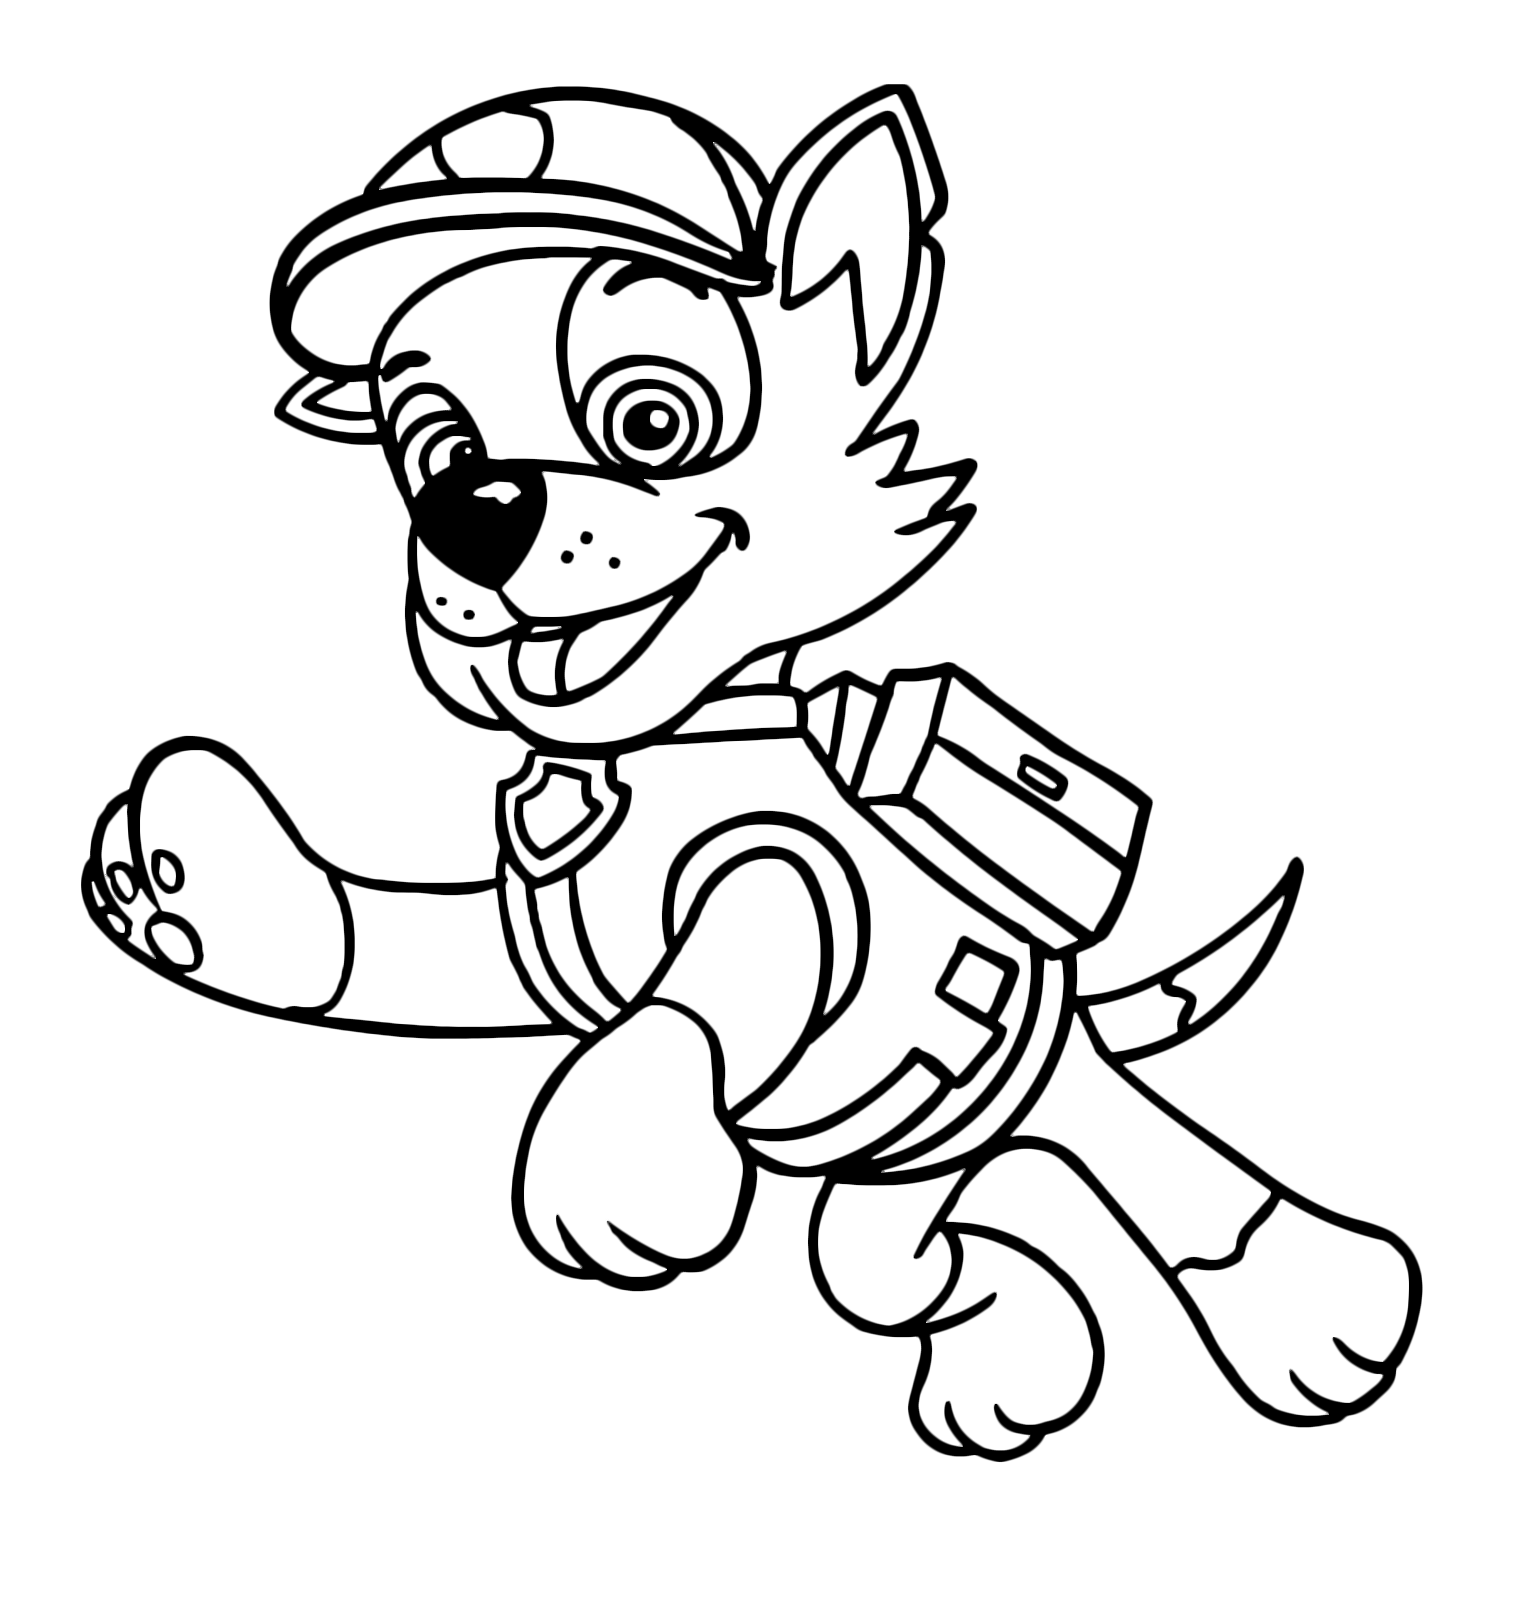 rocky from paw patrol paw patrol rocky recycler dog in action with his vehicle paw from patrol rocky